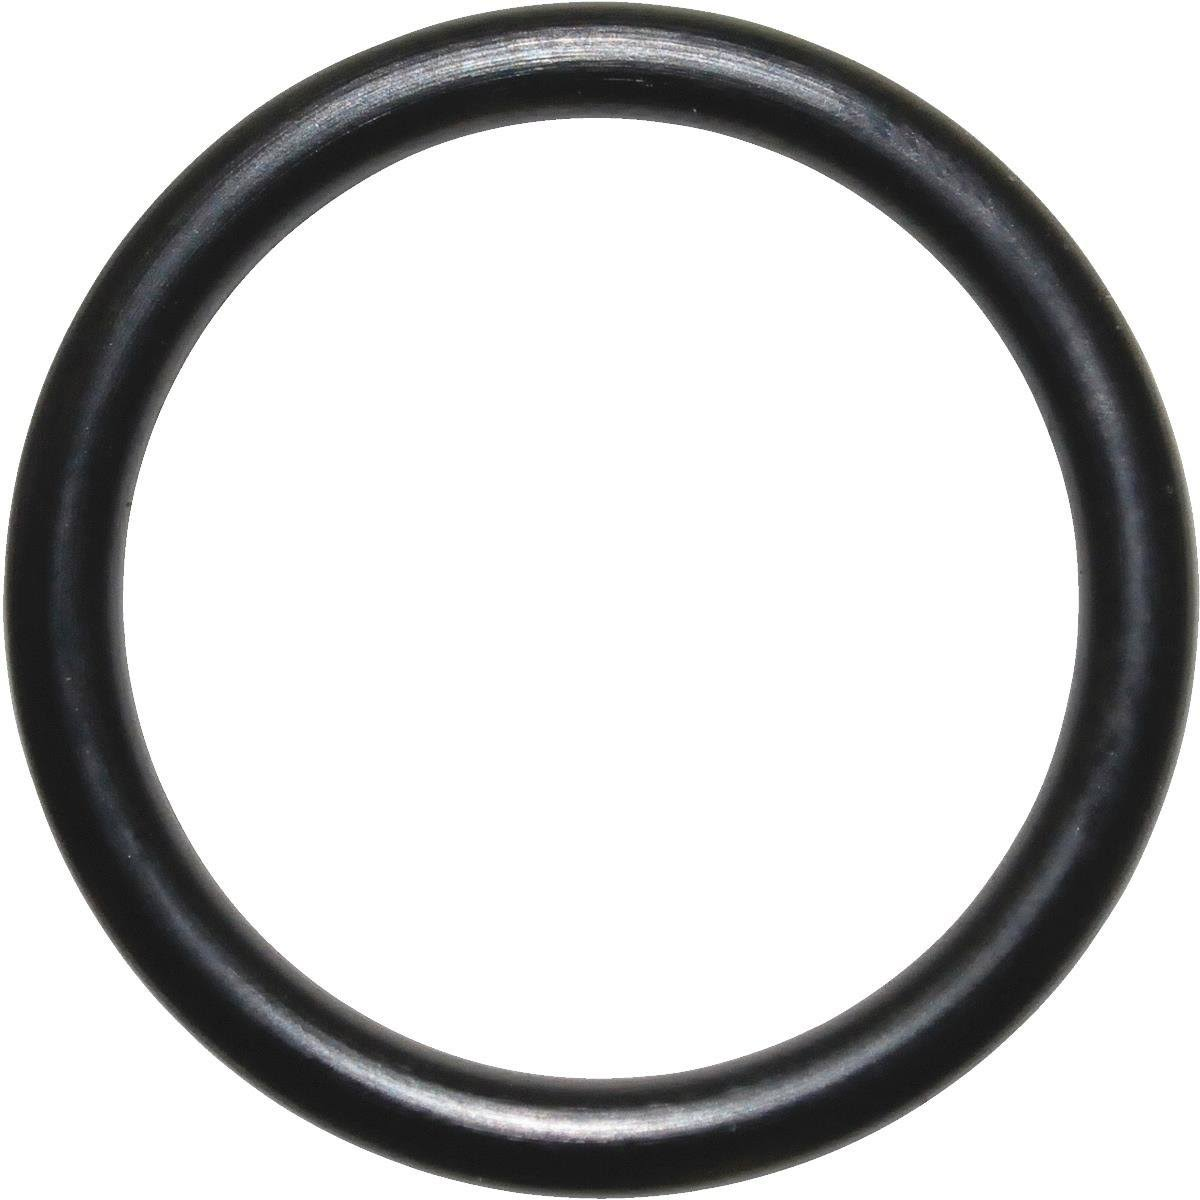 Danco Perfect Match O-Rings